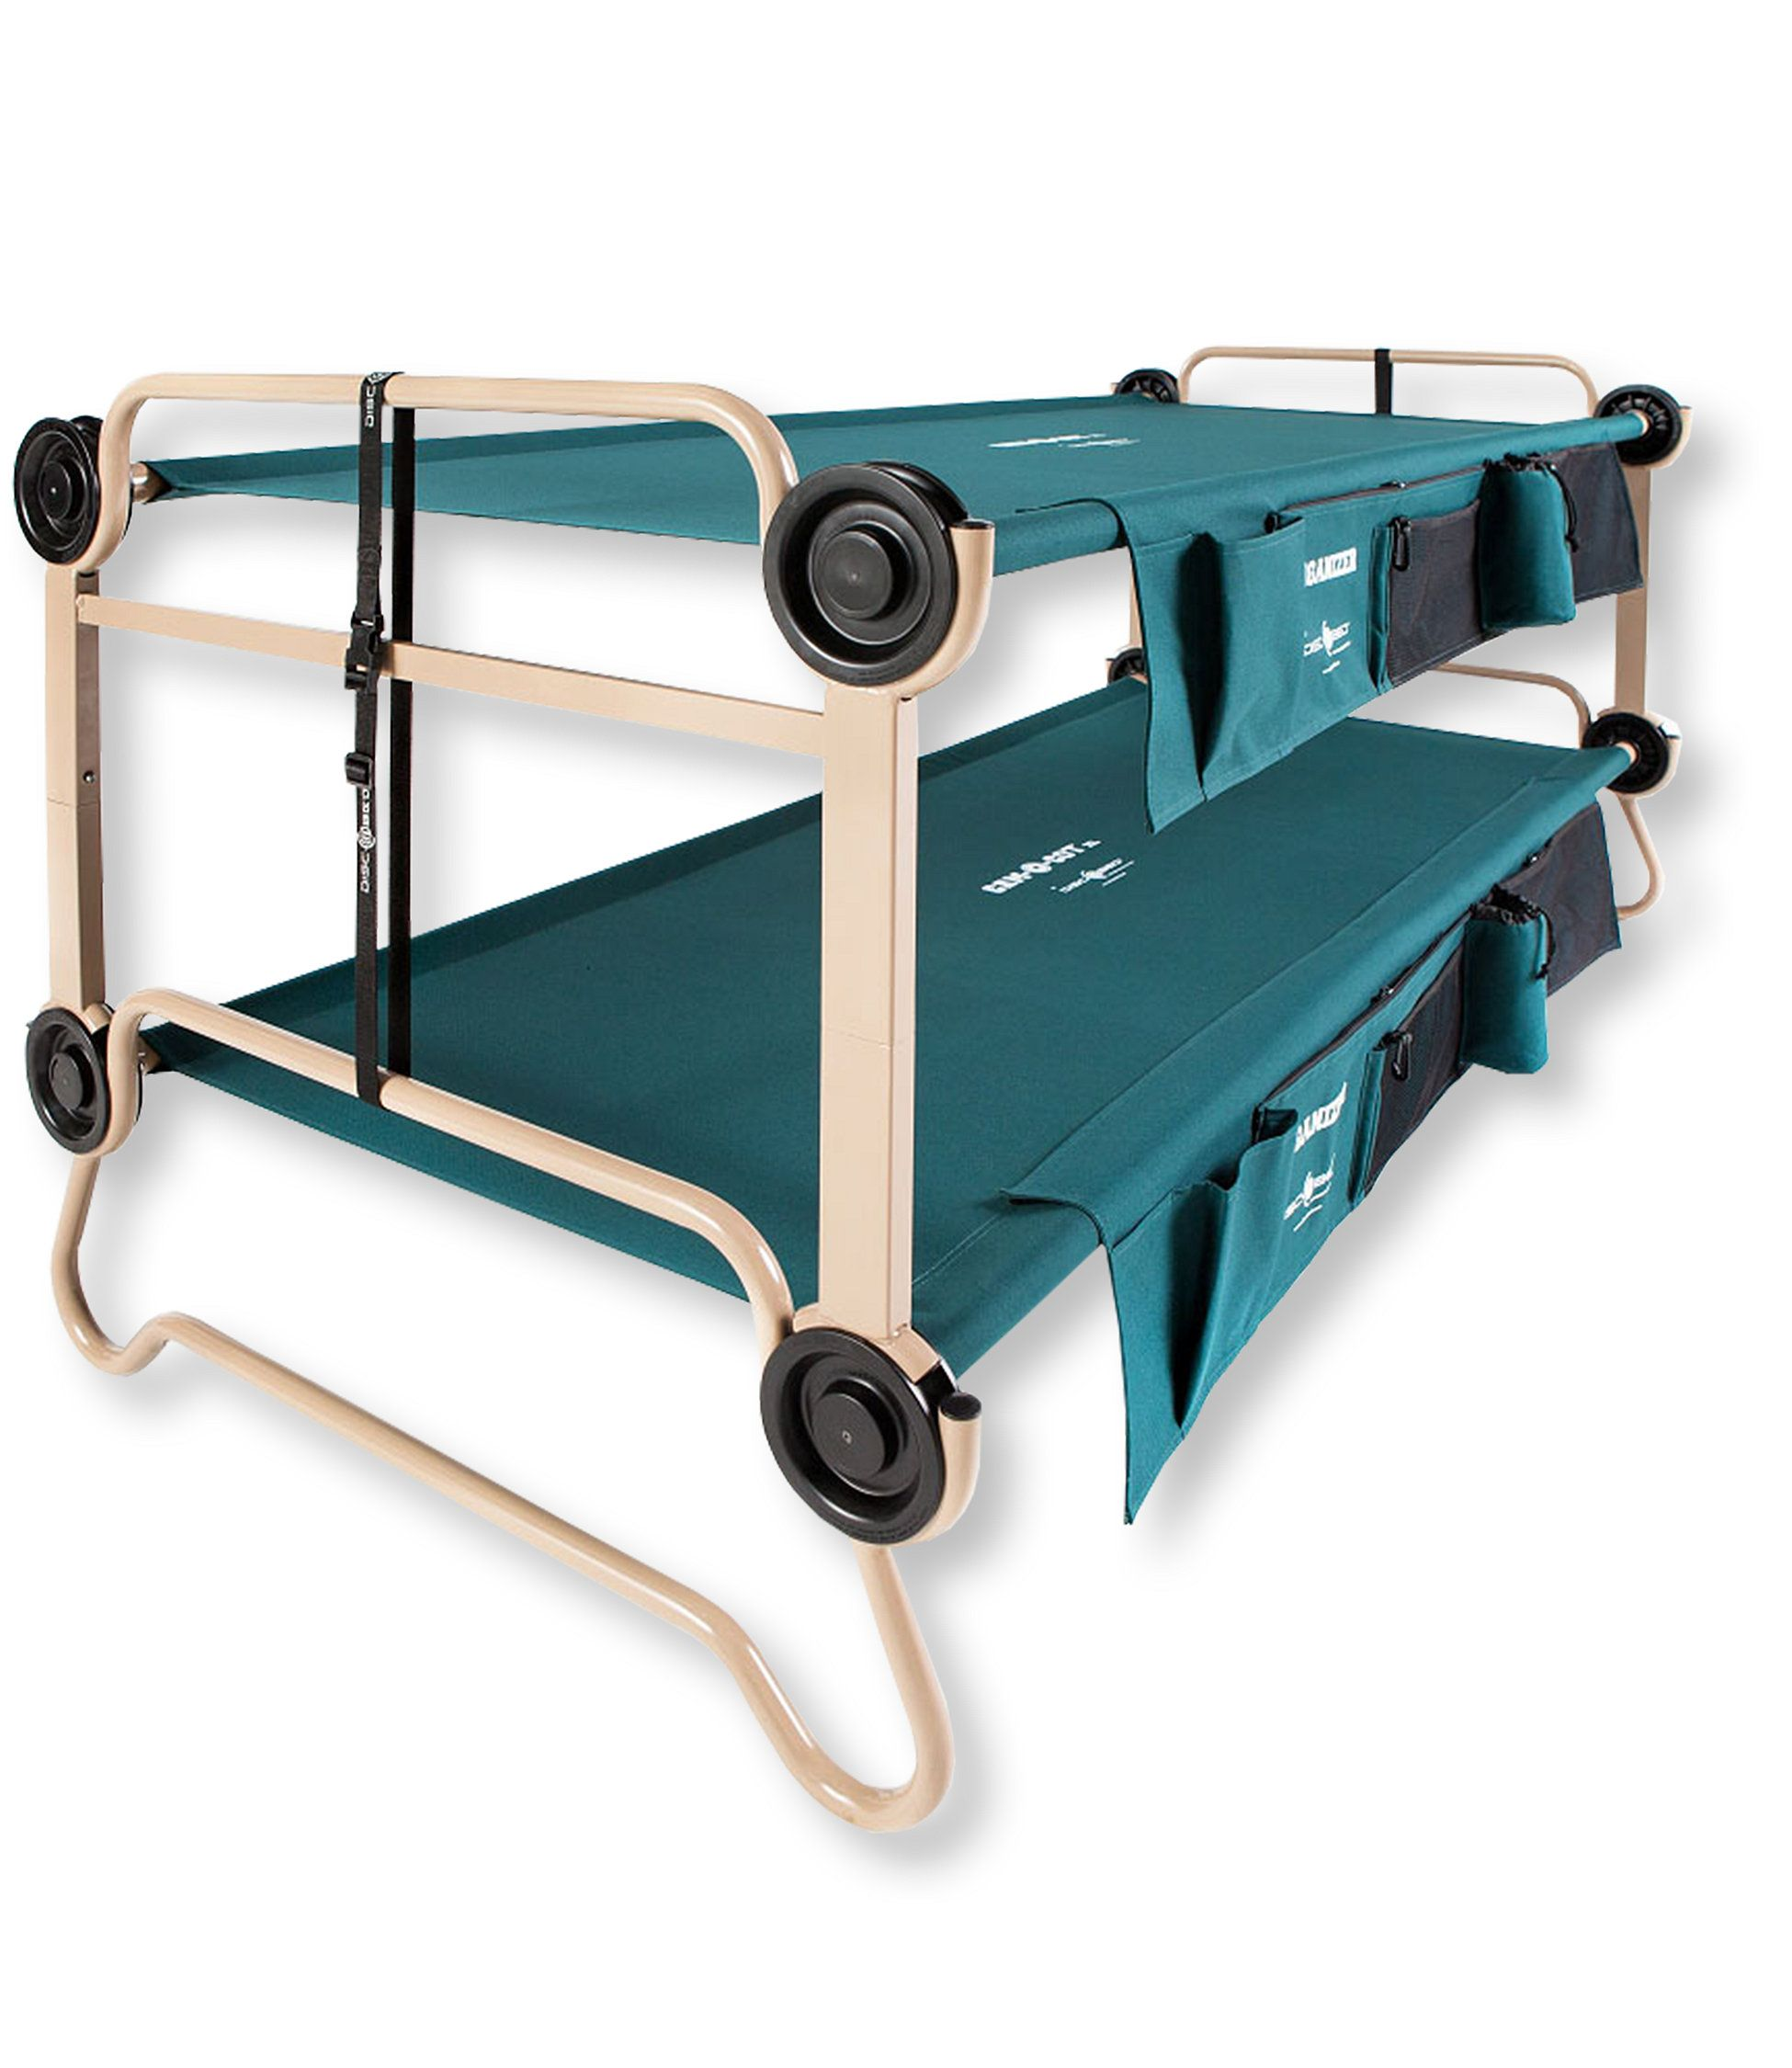 Disc O Bed Cam O Bunk Xl Cot Boys Pinterest Cots And Beans